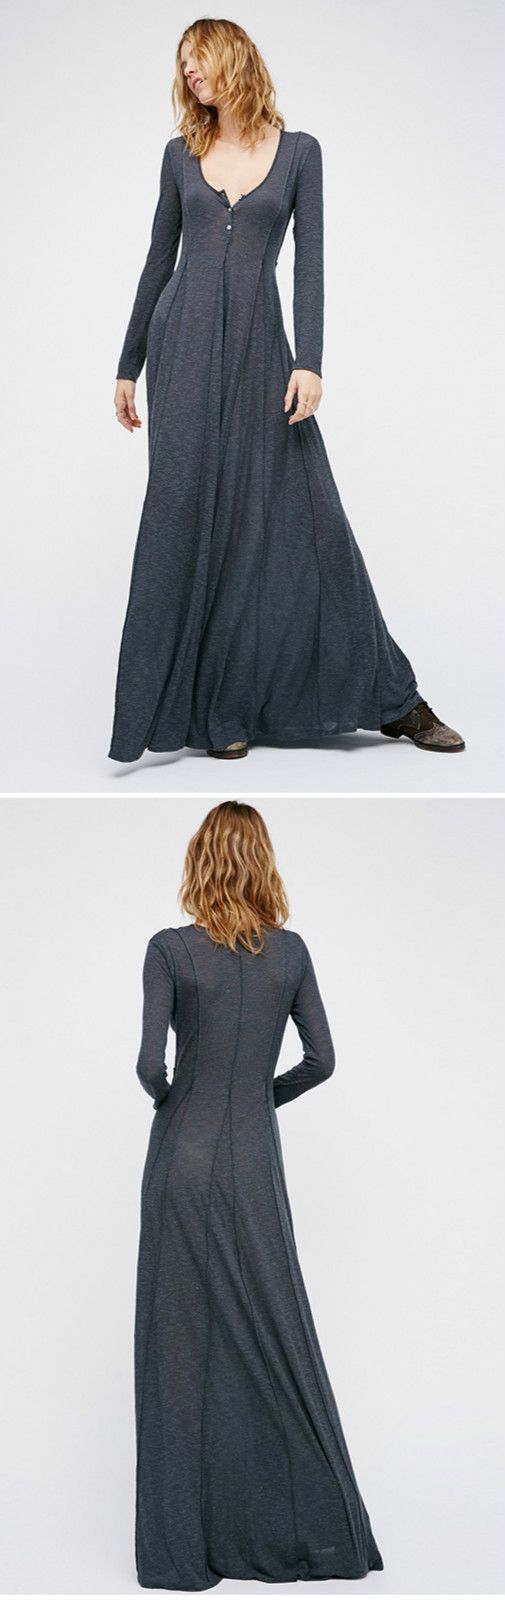 Scoop neck long sleeve maxi dress repin by dostinja wtf is